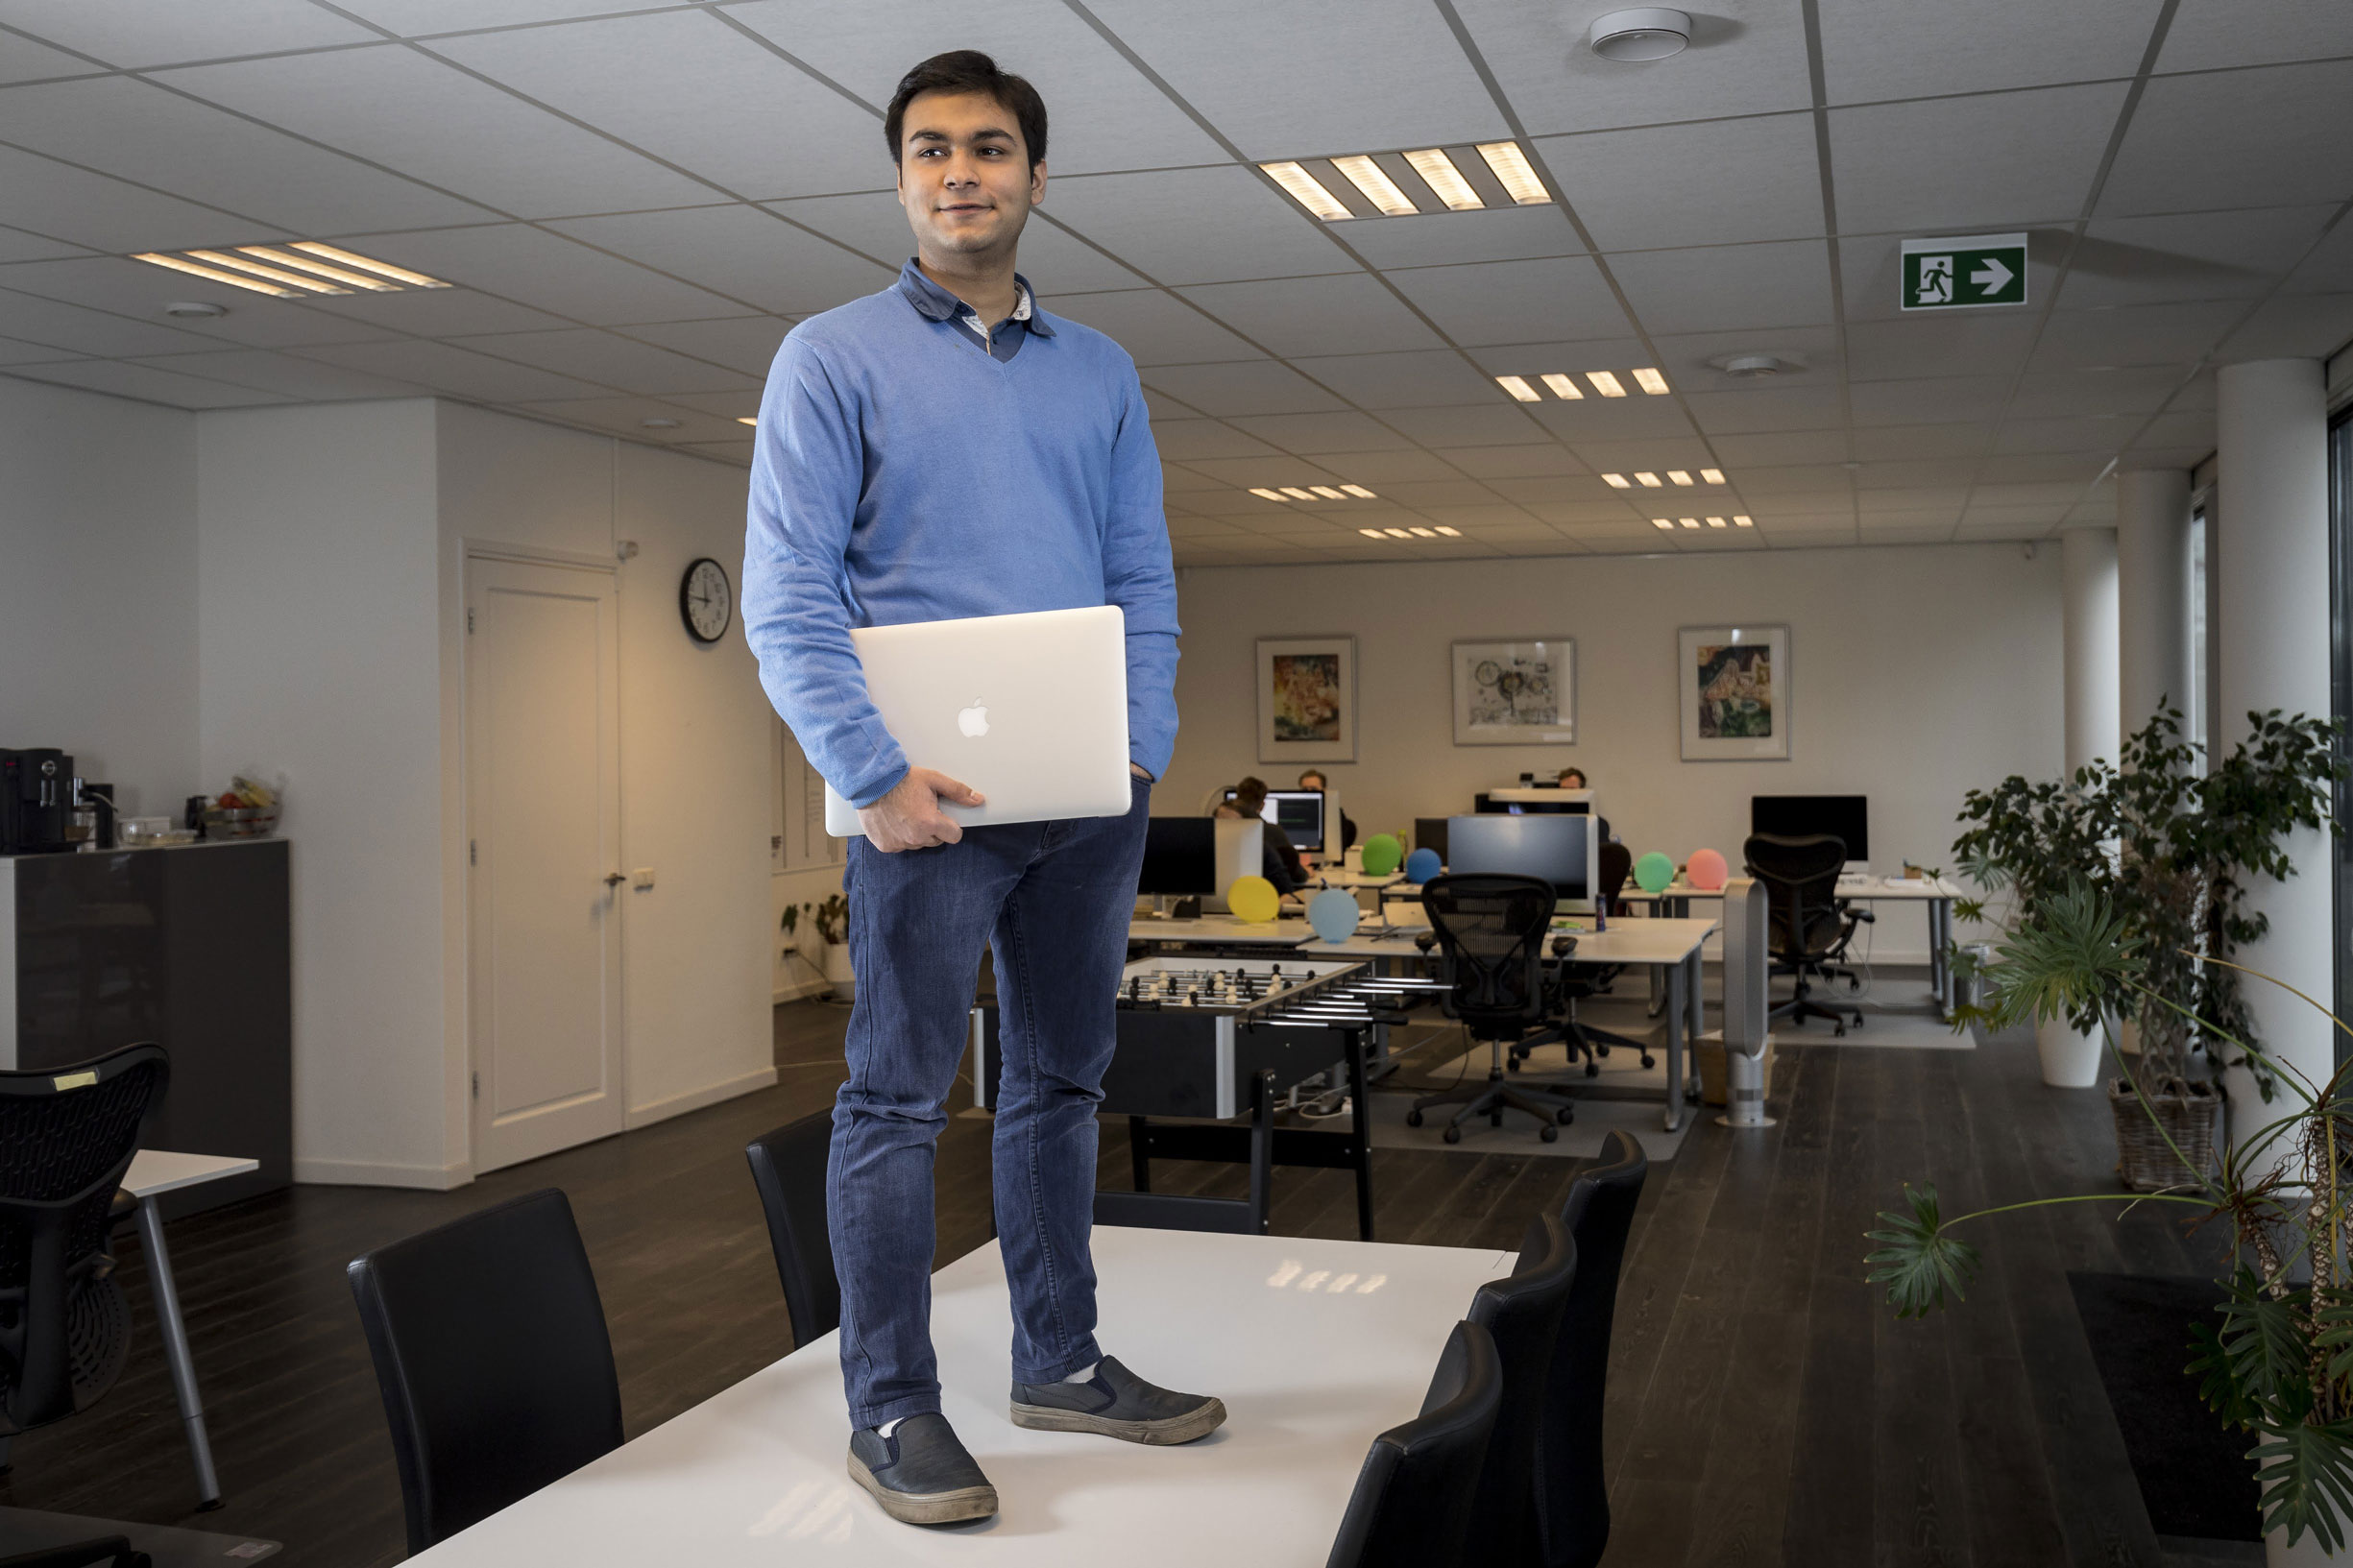 Anand Chowdhary standing on a desk in his office